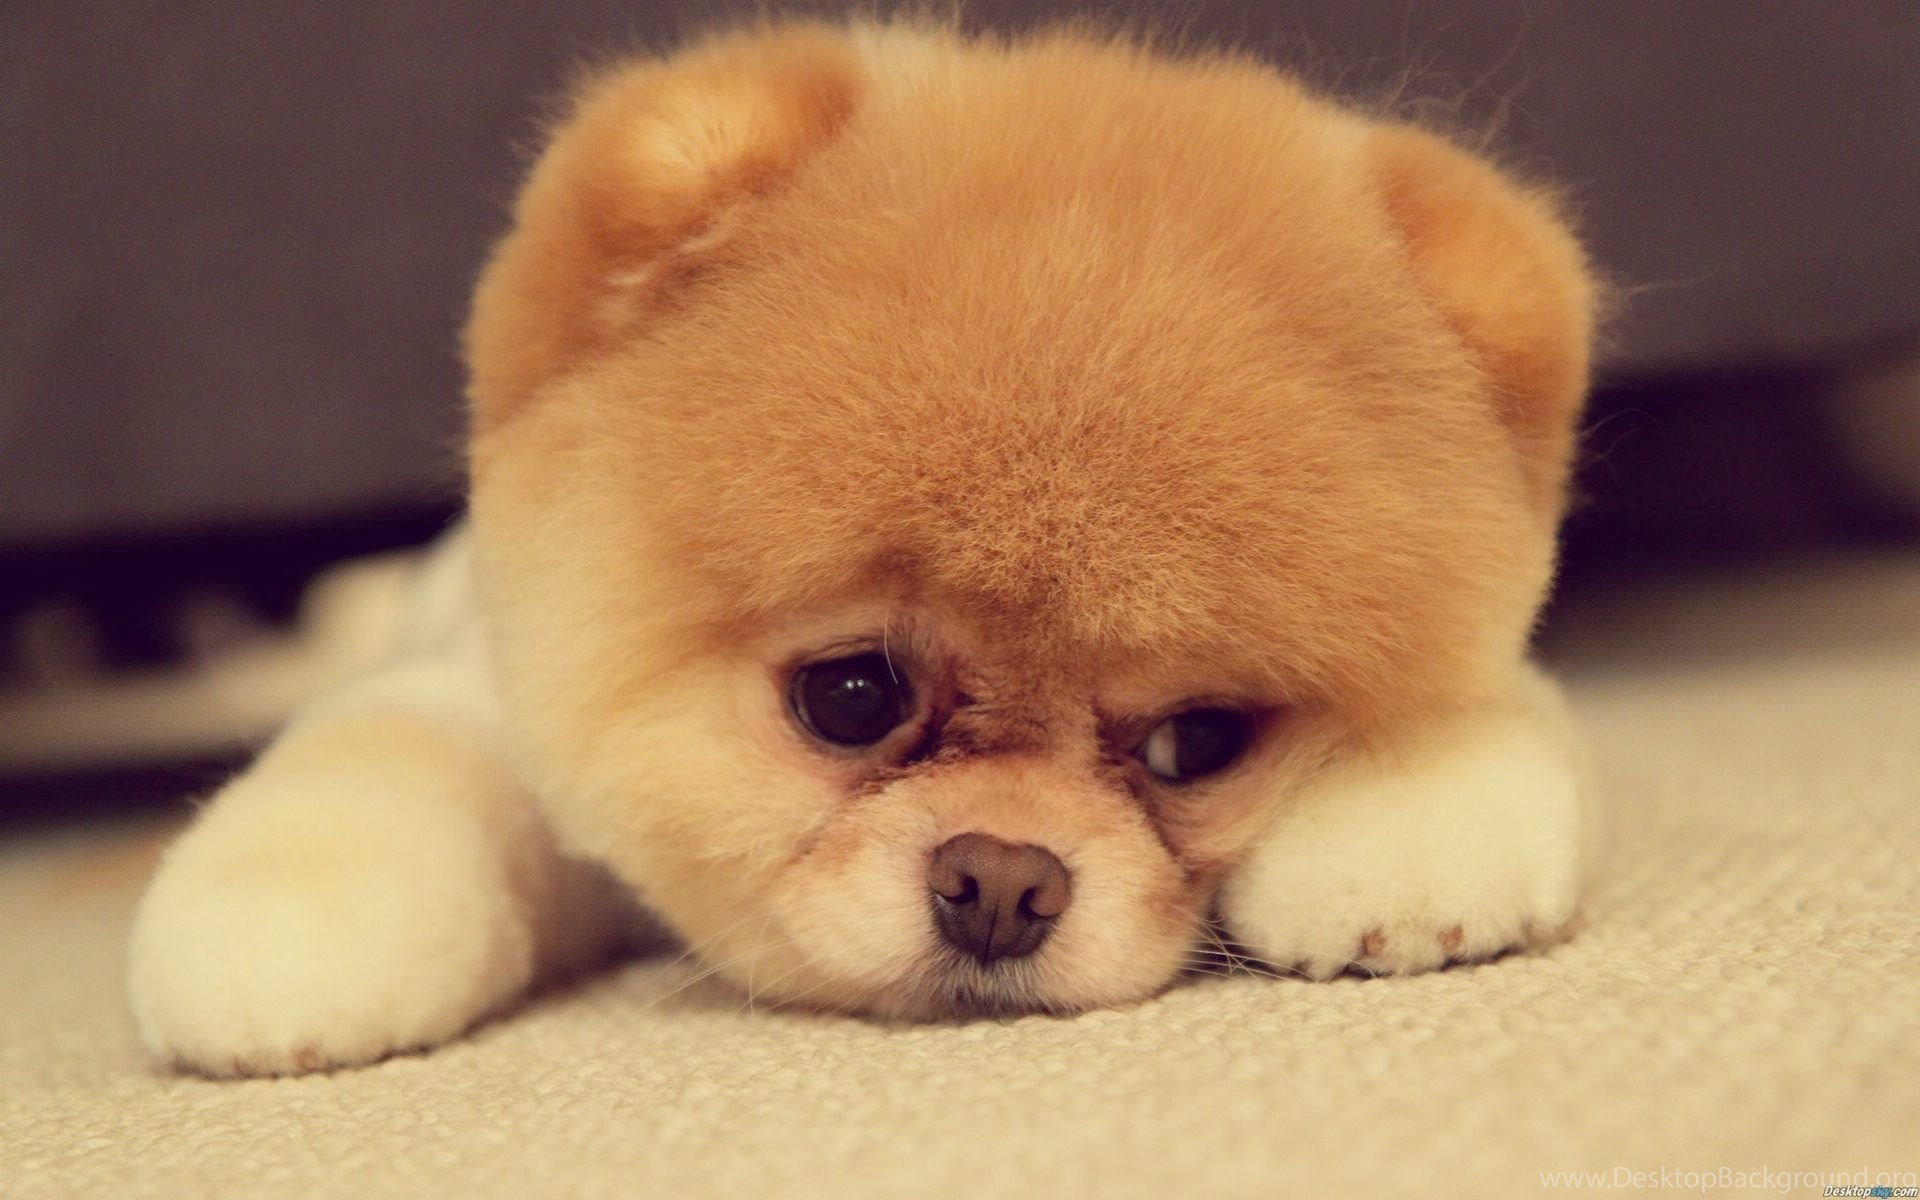 Little Puppy Wallpapers For Desktop Mobile Of Cute